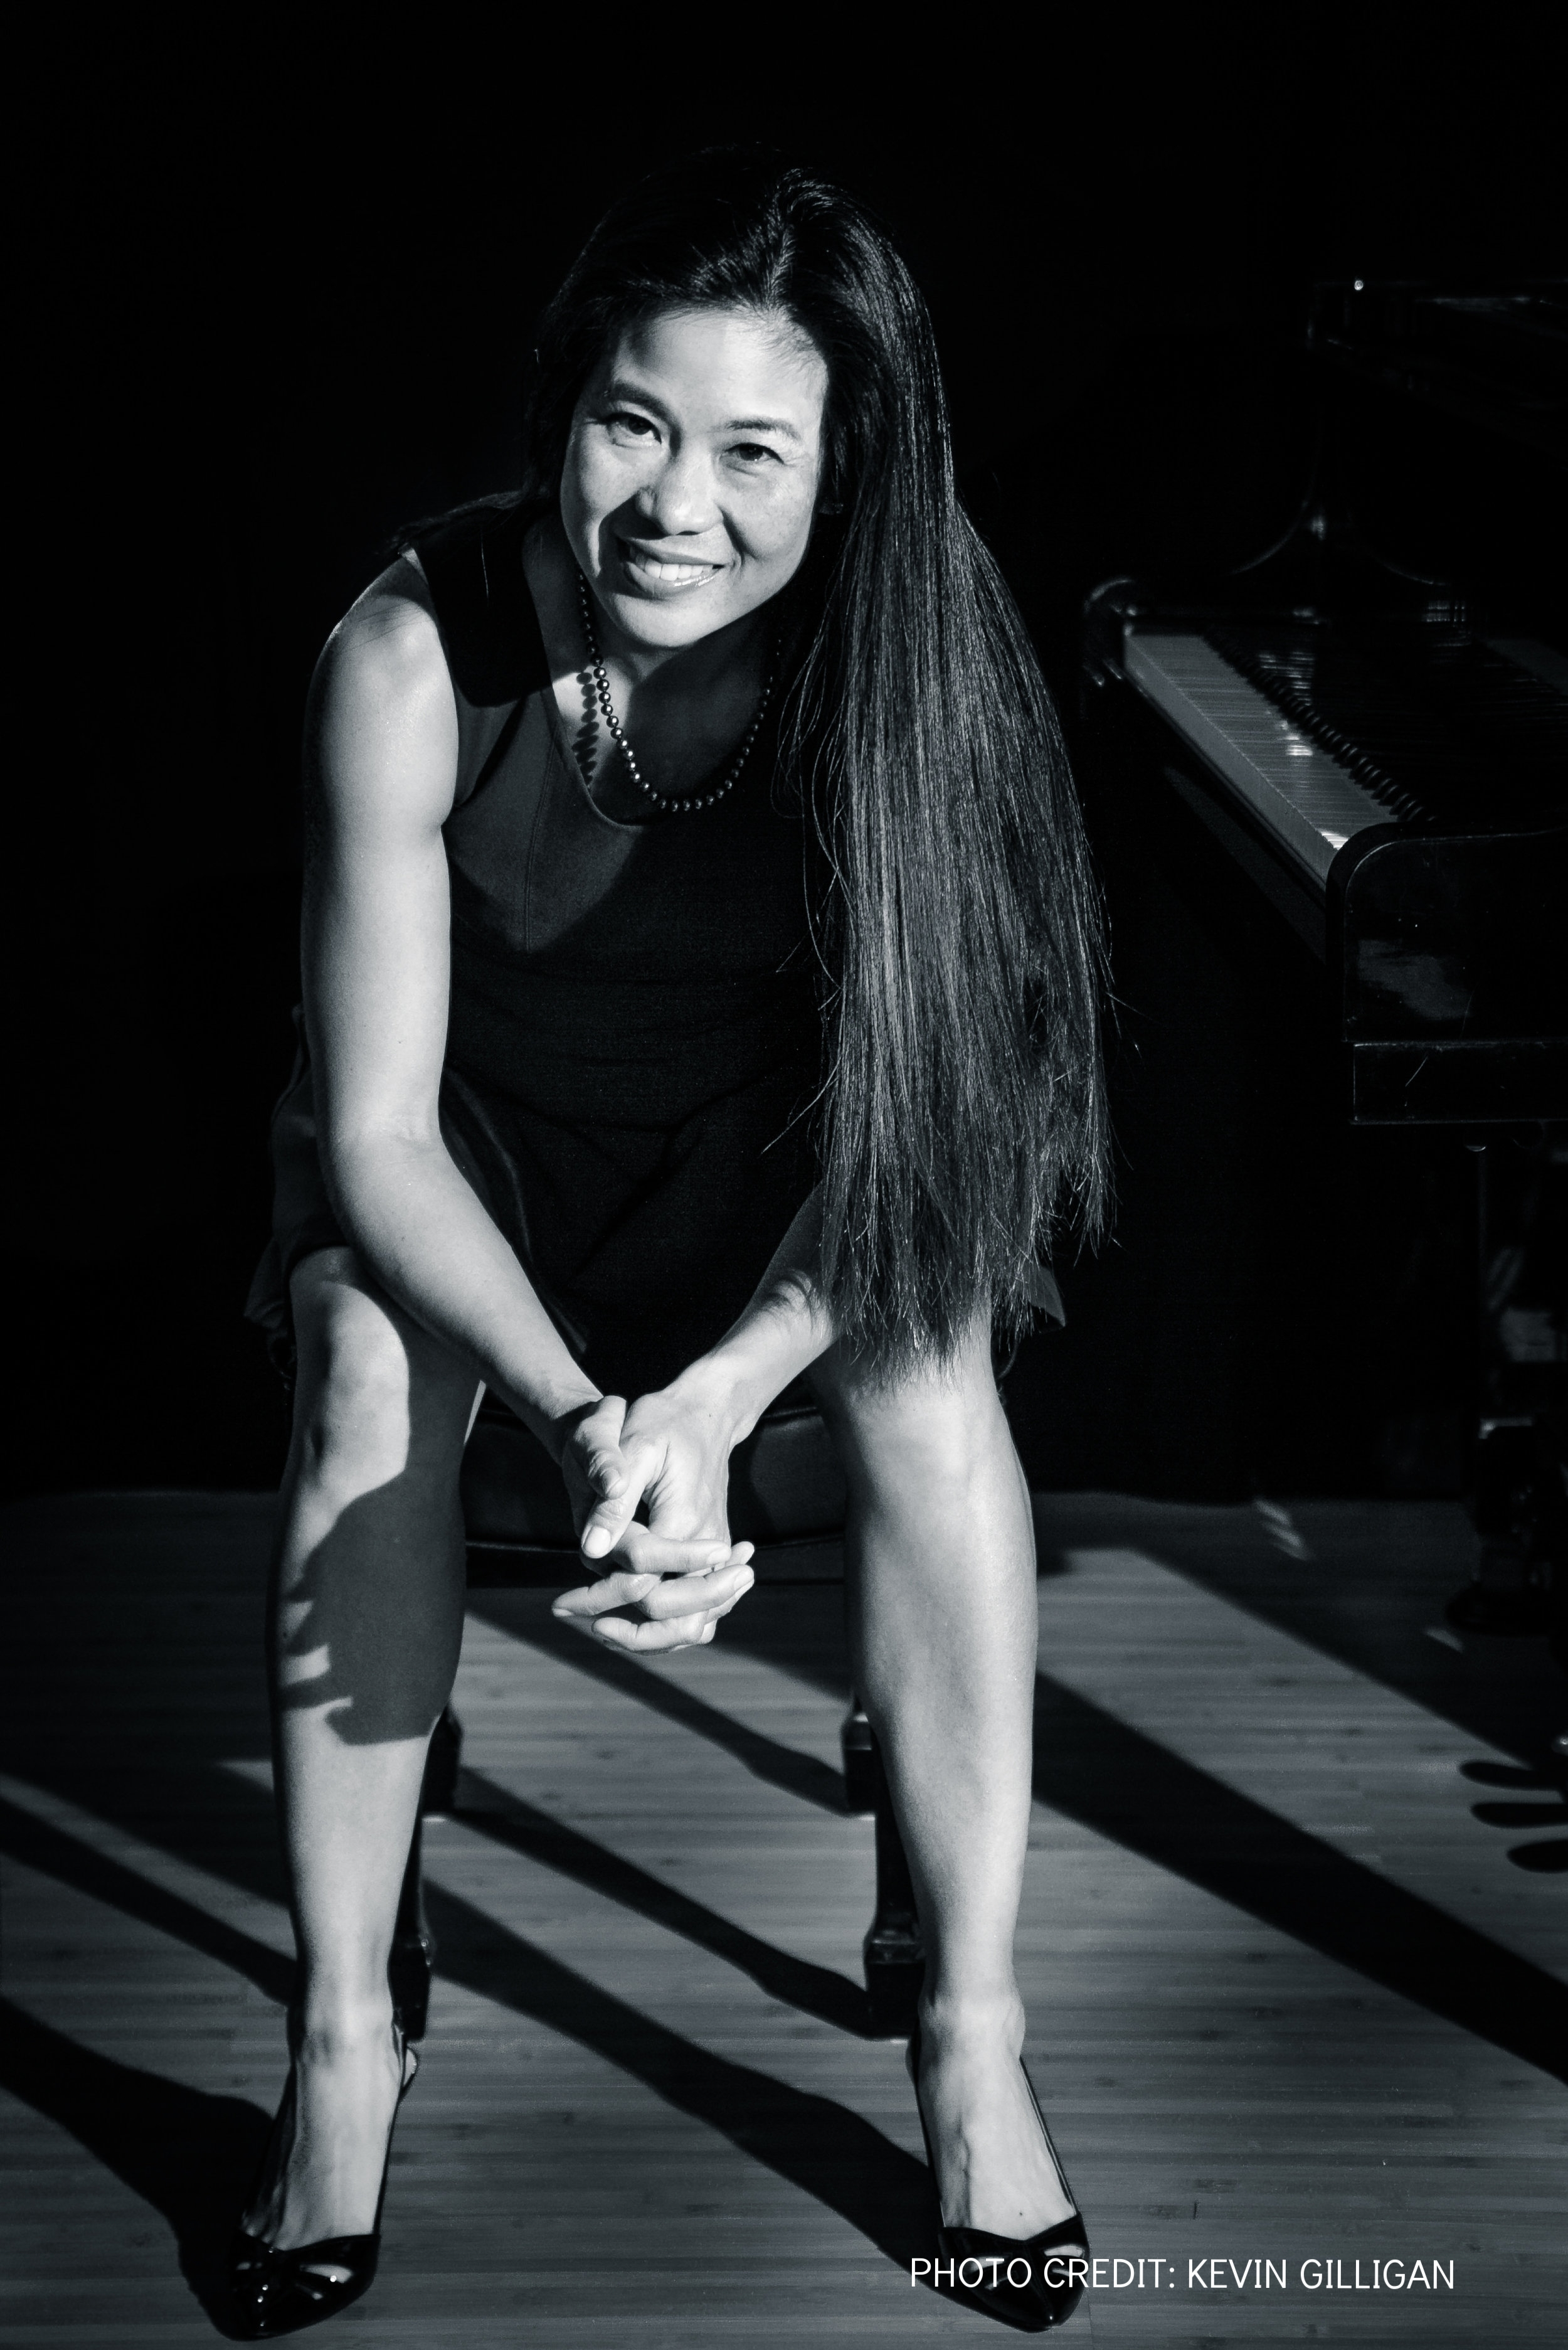 Noreen Wenjen, NCTM - Nationally Certified Teacher of MusicNoreen Wenjen received a BM from UC Santa Barbara in Piano Performance, an Artist Diploma from the American College of Musicians, and the 15-year MTNA National Teaching Certification in 2012. She received a teaching certification from the Royal Conservatory of Music (RCM) in 2018. Noreen has received top prizes from international piano competitions and is listed in Who's Who Among American Women. Her teachers include Joanna Hodges, Nancy Rohr, Peter Yazbeck, Dr. Stewart Gordon, and Jim McCormick.Noreen is the President of the California Association of Professional Music Teachers (CAPMT). She also serves on the MTNA AMT Editorial Committee for their national magazine American Music Teacher. She served as the state Membership Secretary for CAPMT and as Piano Auditions/Ensemble Auditions Chair for CAPMT District 3 for almost 20 years. Noreen has been a member of MTAC since 1998 and served as 1st Vice President for the Long Beach Branch for ten years and Community Outreach Chair for the South Bay Branch for four years.Noreen's experience in marketing with Fortune 500 companies Nissin Foods and MacTemps (now Aquent) has helped her bring her business savvy to her piano studio and www.wenjenpiano.com website. She recently presented The Business-Minded Piano Teacher: Protection, Prevention, and Development Tips for Your Music Studio and presented Two-year Wait List: How to Build and Maintain a Recession-proof Music Studio at the 2015 MTNA Conference in Las Vegas. She will present three music technology sessions at the 2016 MTAC Convention in Los Angeles (see below).She is privileged to-have taught extraordinary students who are blind, deaf, gifted, gifted Profoundly, dyslexic, and-have ADHD. Her students-have received awards in piano competitions and she serves as an adjudicator the MTAC, SYMF, and SCJBF, among other events.She maintains piano studios and Seal Beach in Torrance, CA and enjoys playing tennis, cooking